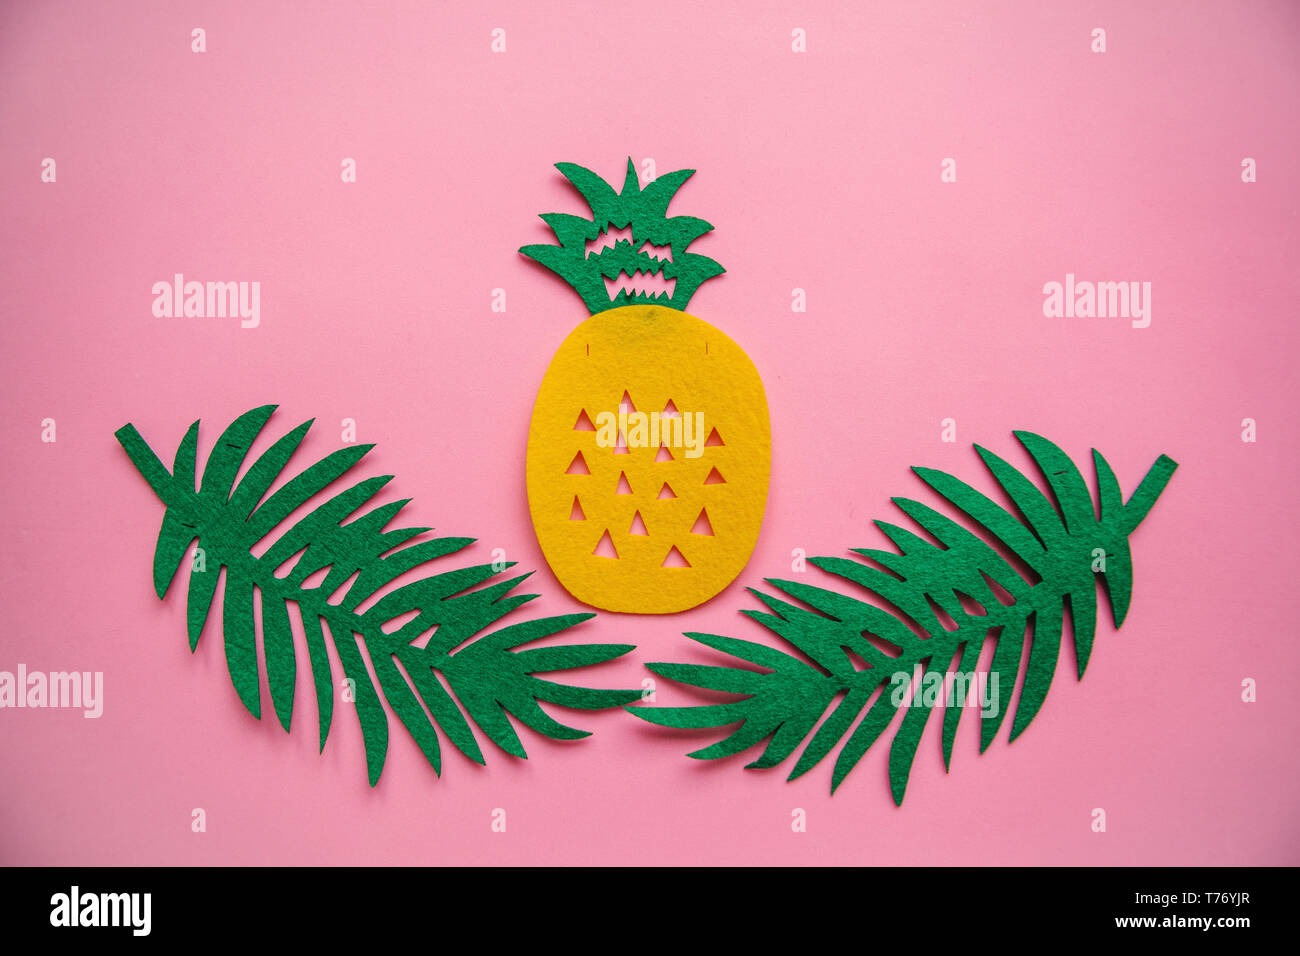 Felt tropical leaves Fern and pineapple on a pink background in minimal style. Summer design. - Stock Image